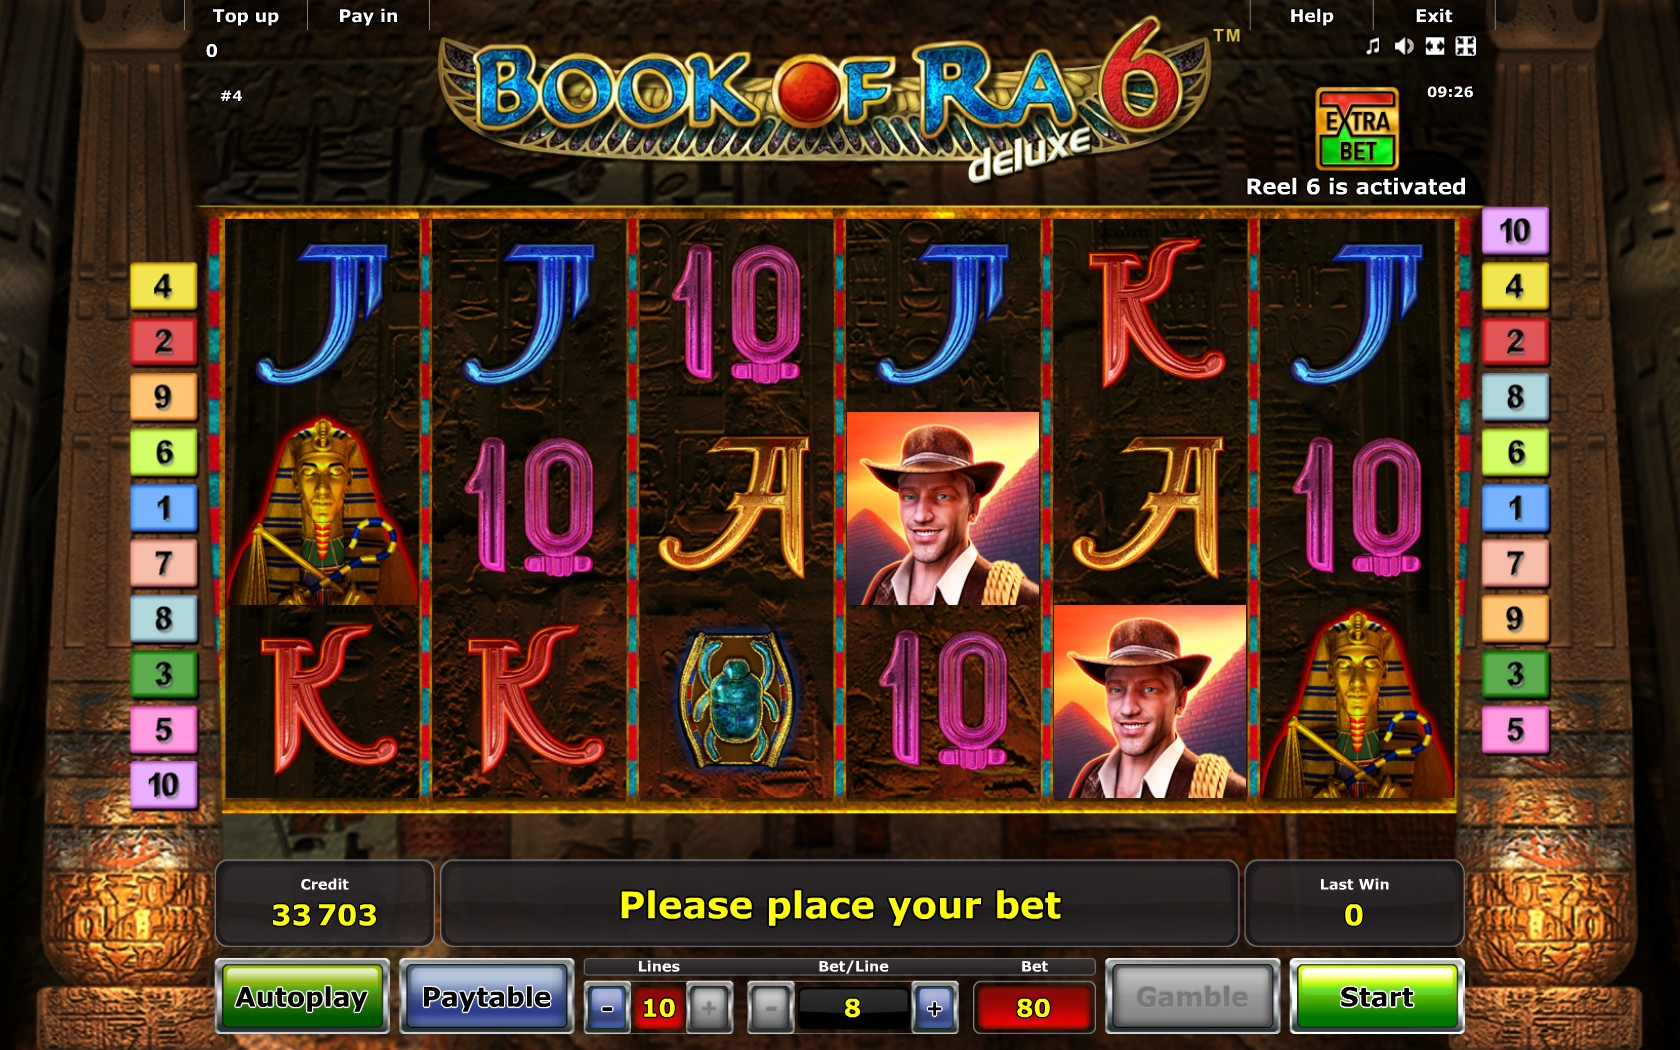 casino online book of ra www.book-of-ra.de